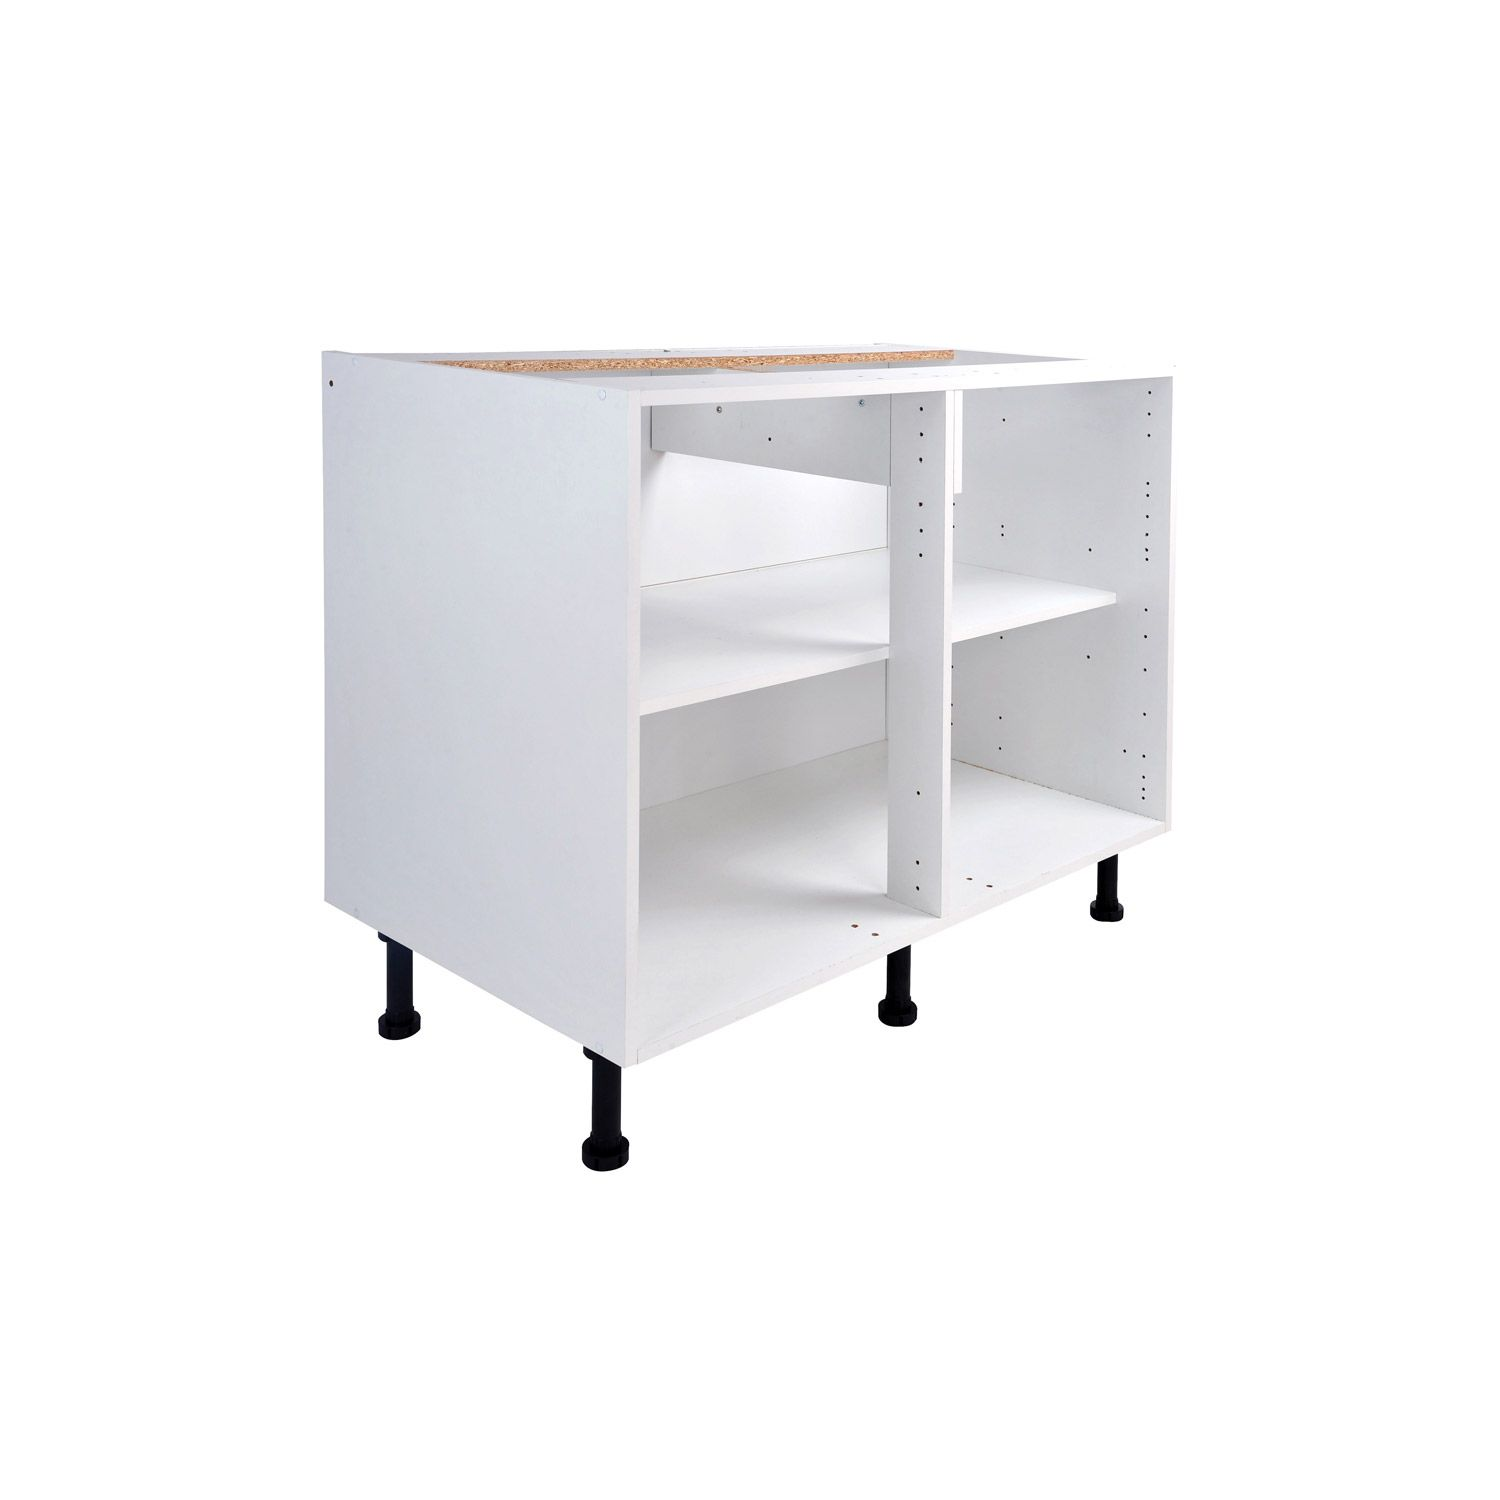 caisson de cuisine bas b100 ab 100 delinia blanc l100 x h85 x p56 cm 64eur leroy merlin. Black Bedroom Furniture Sets. Home Design Ideas